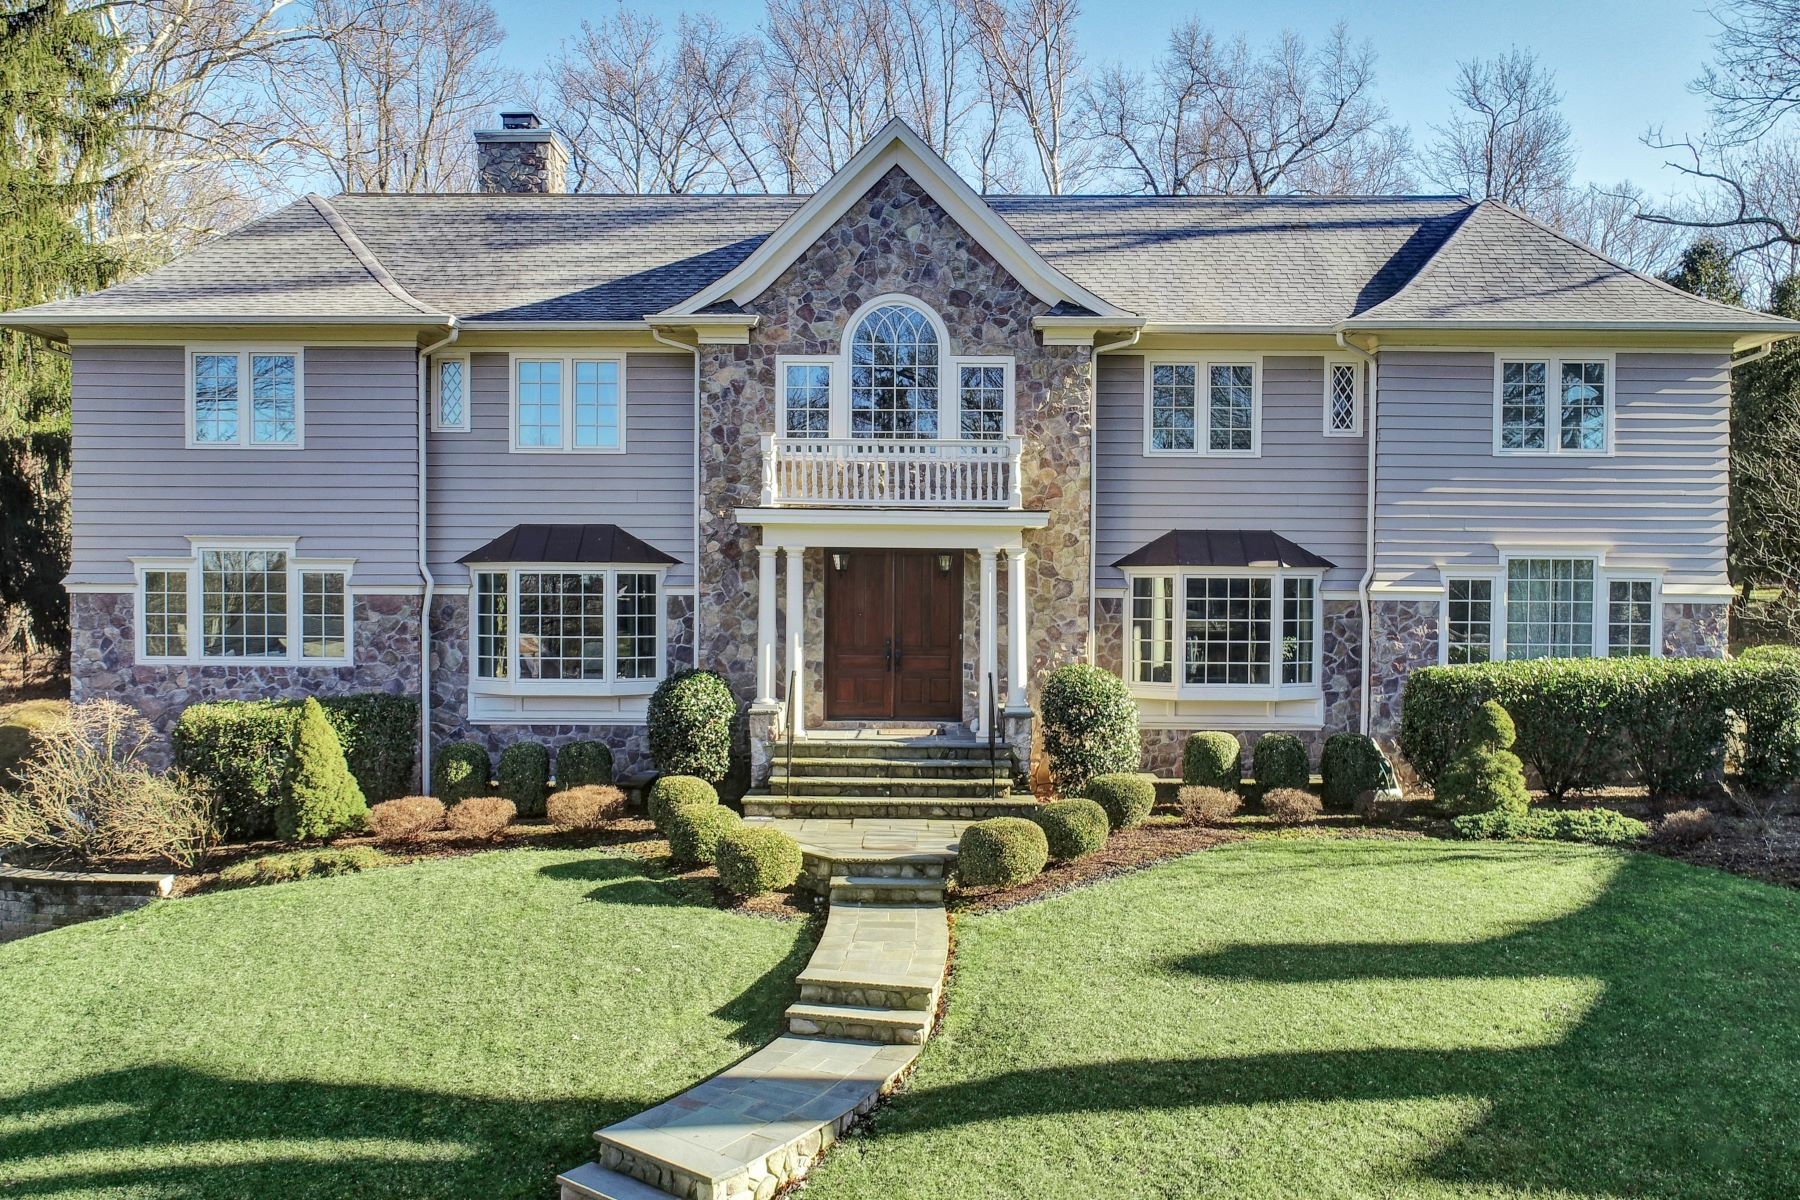 Single Family Homes for Sale at Fresh and Modern Colonial 15 Lee Terrace Short Hills, New Jersey 07078 United States